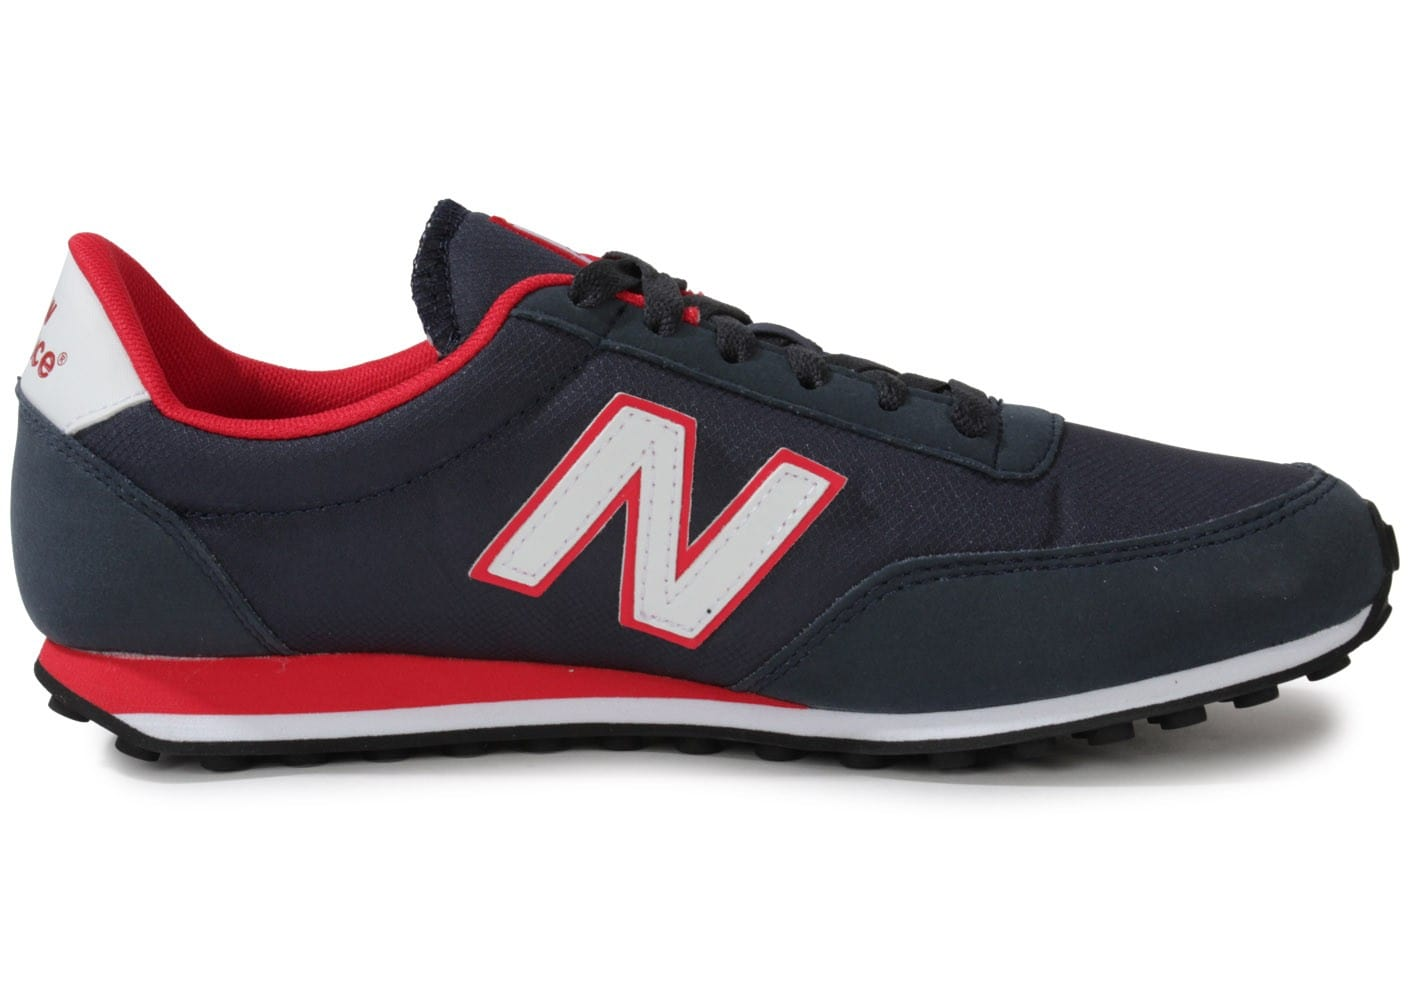 new balance u410 bleu marine rouge chaussures homme chausport. Black Bedroom Furniture Sets. Home Design Ideas